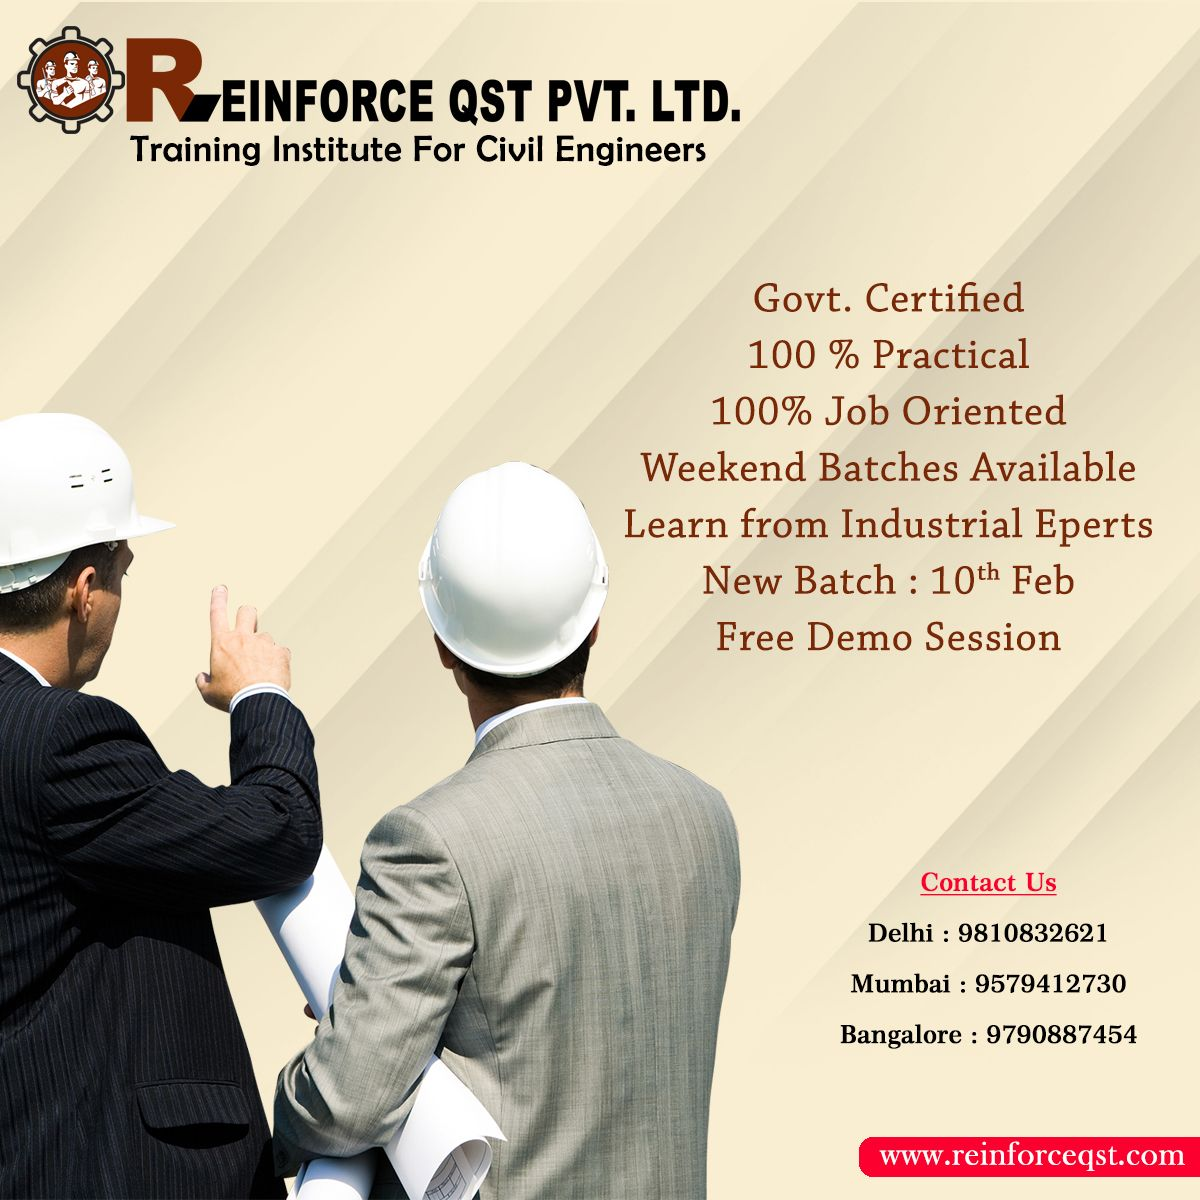 Reinforce Qst Are One Of The Top Quantity Surveyor Course